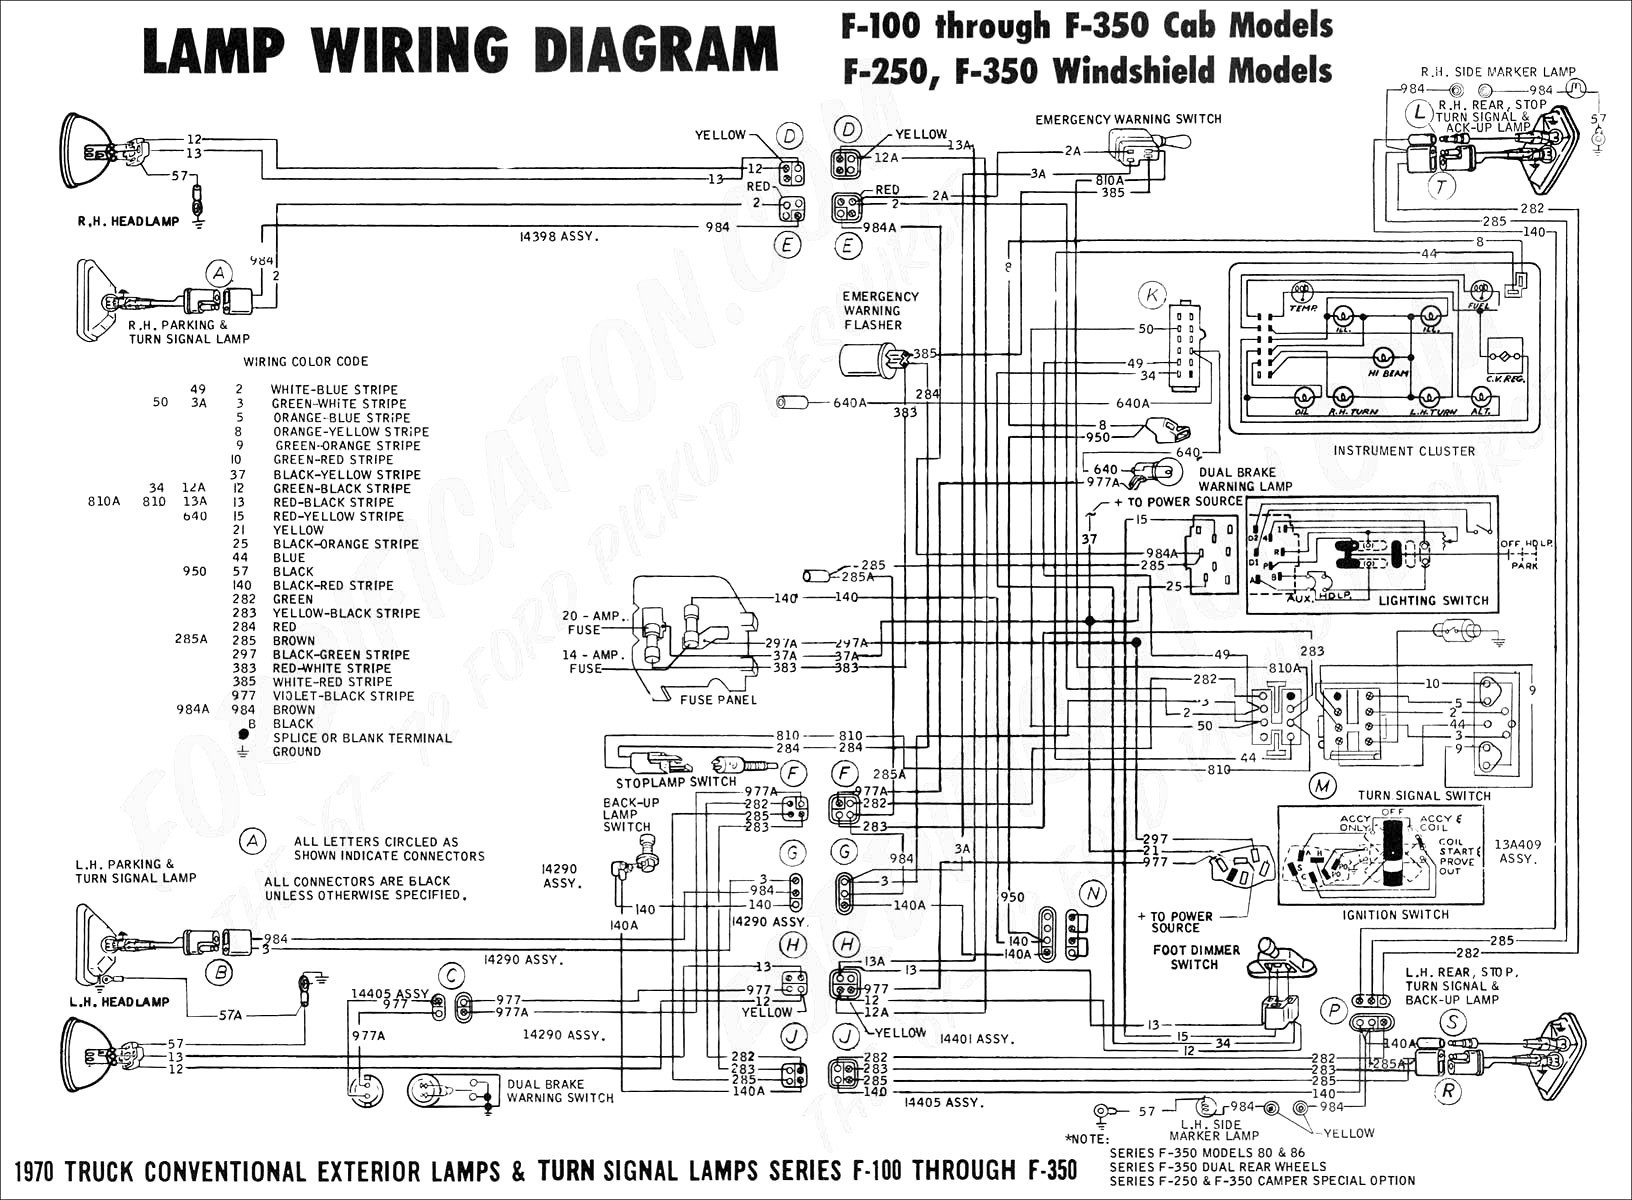 Kia Sedona Wiring Diagram Wrg 7963] Wiring Diagram for 1999 Cadillac Eldorado Of Kia Sedona Wiring Diagram F2339 Wire Diagram Allis Chalmers B12